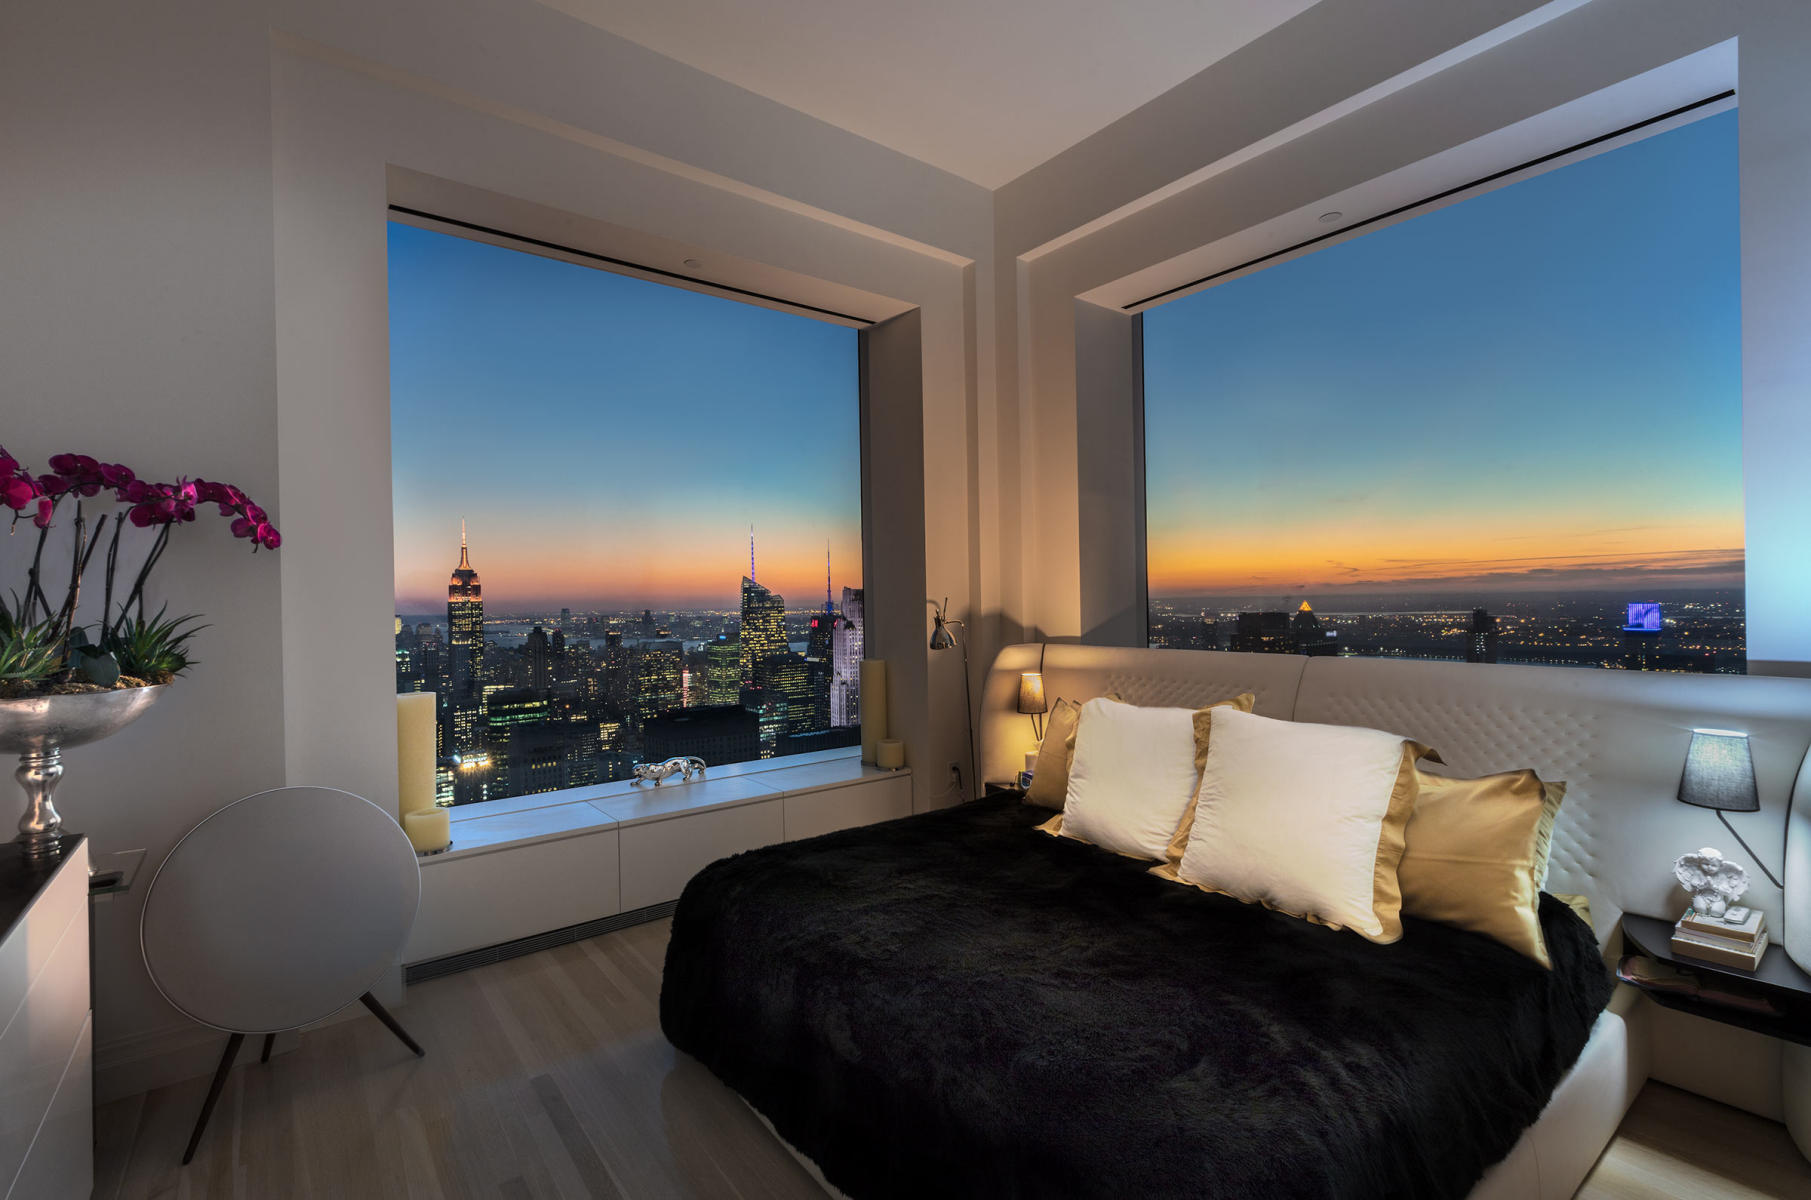 NYC - 57th and Park Avenue - 66th Floor - bedroom with western and southern view of Manhattan - interiors for private client : Miscellanous Projects : New York NY Architectural Photographer | Interior and Exterior